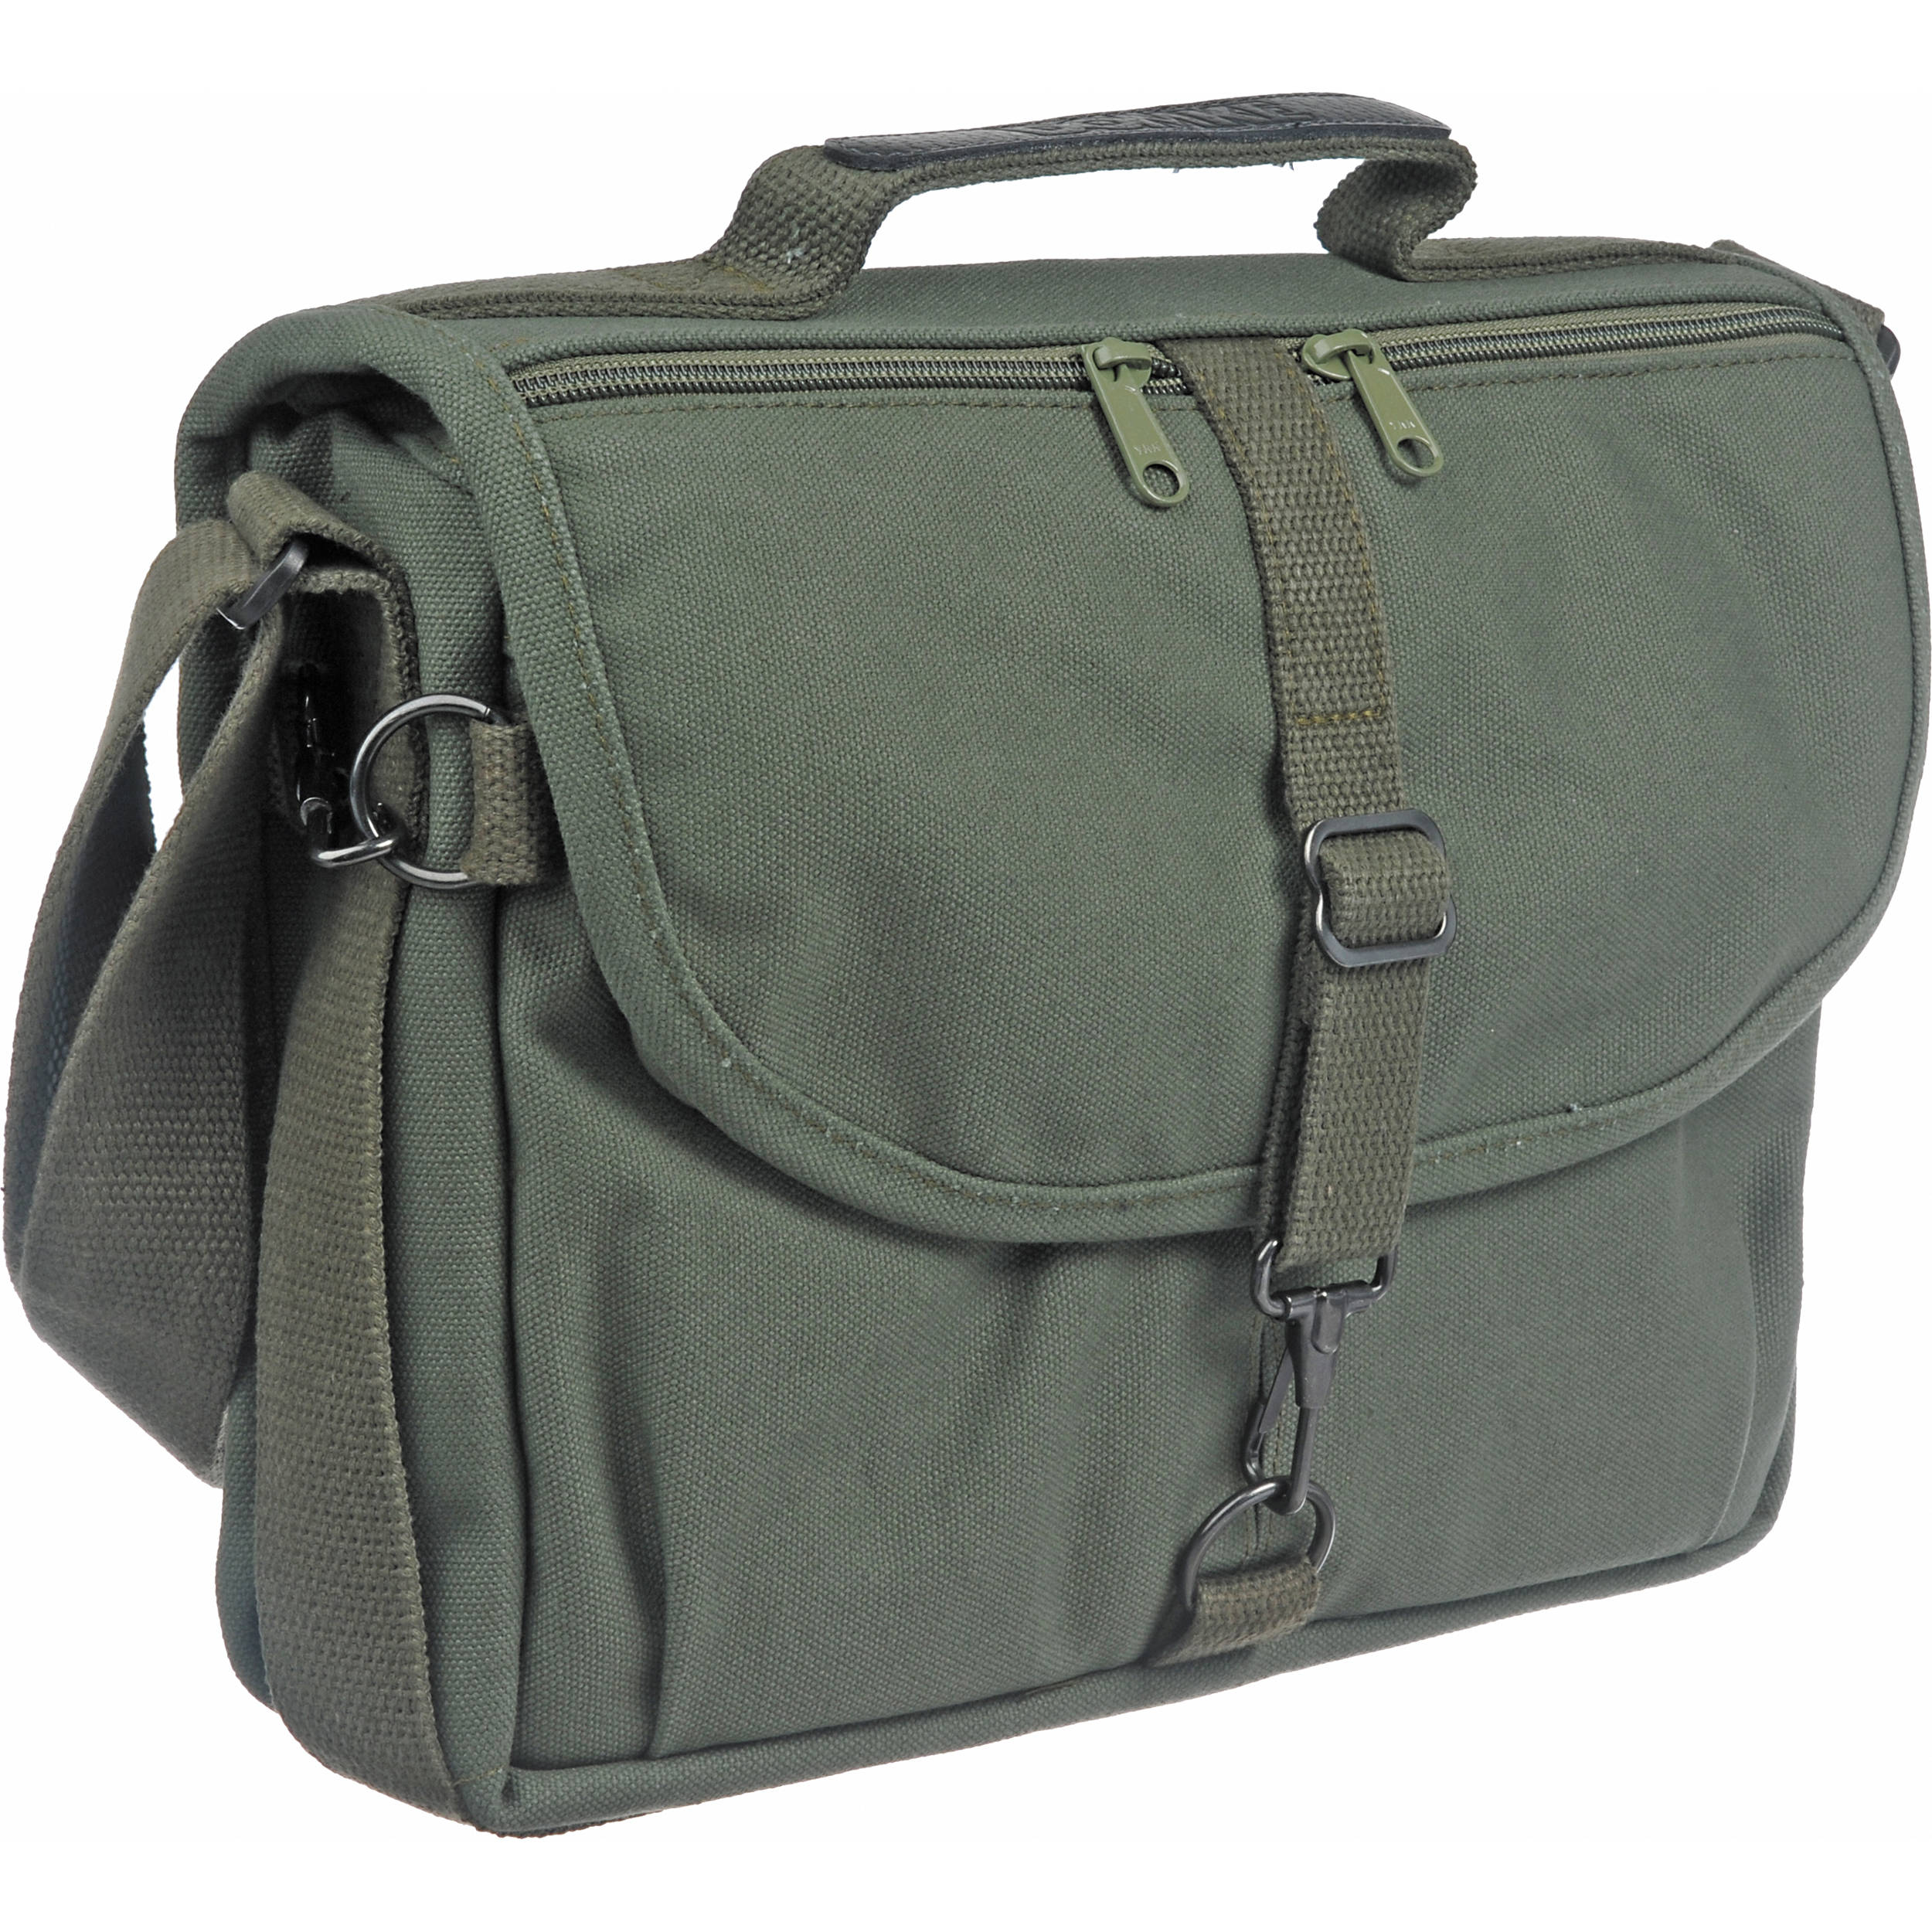 DOMKE F-803 CAMERA SATCHEL/OLI